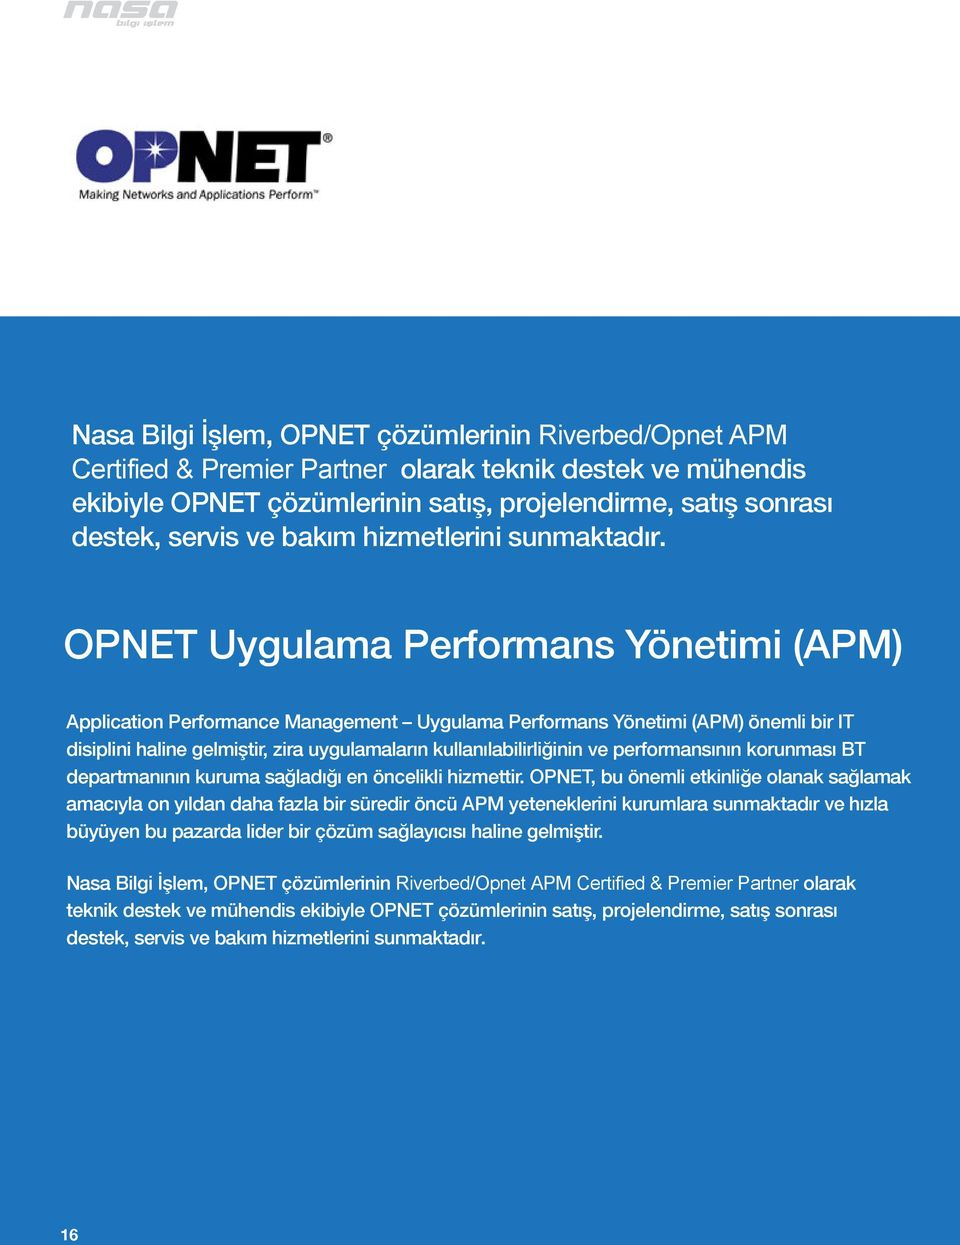 OPNET Uygulama Performans Yönetimi (APM) Application Performance Management Uygulama Performans Yönetimi (APM) önemli bir IT disiplini haline gelmiştir, zira uygulamaların kullanılabilirliğinin ve